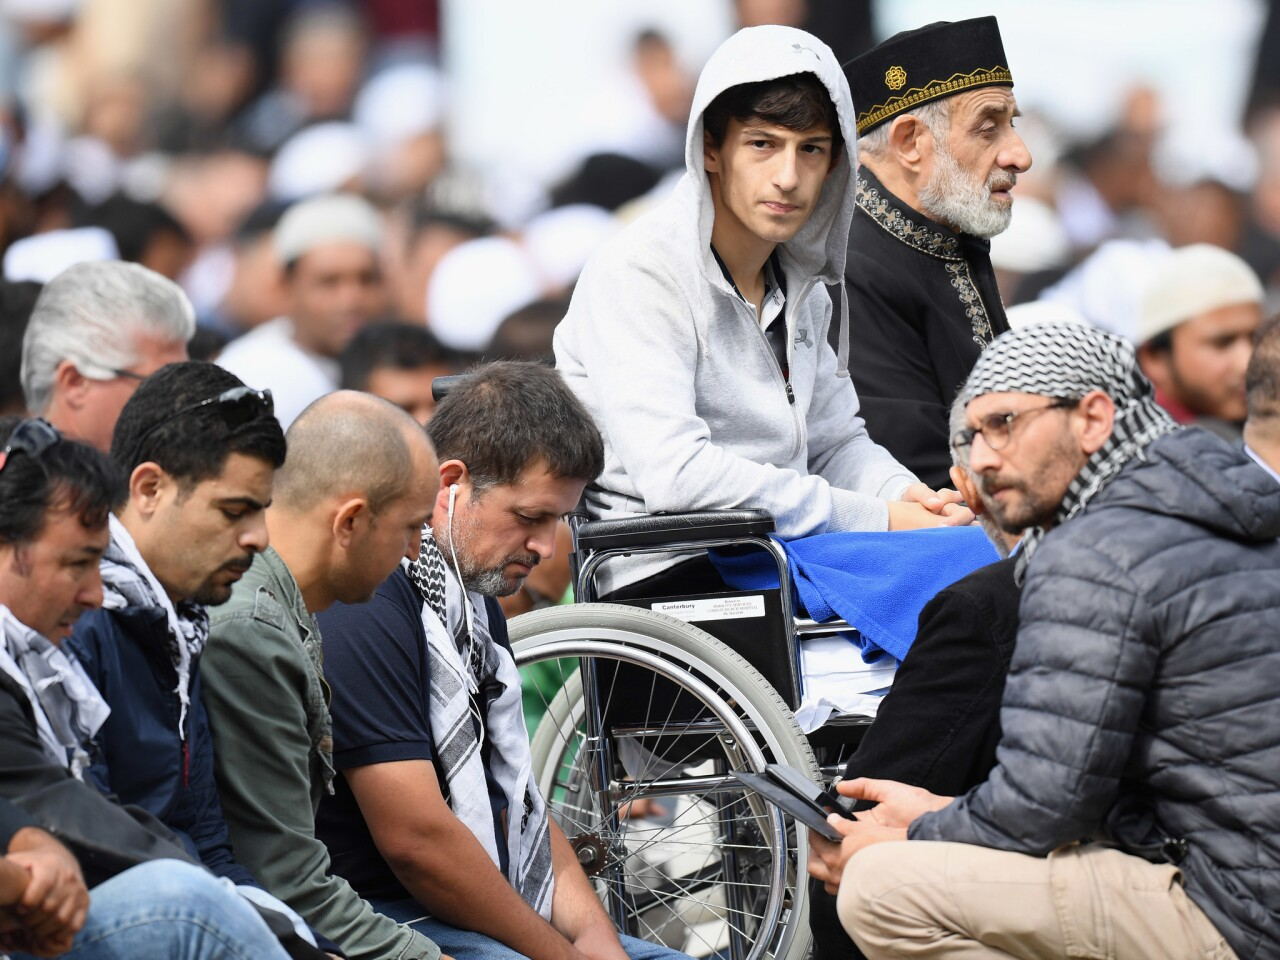 New Zealand falls silent for mosque attacks